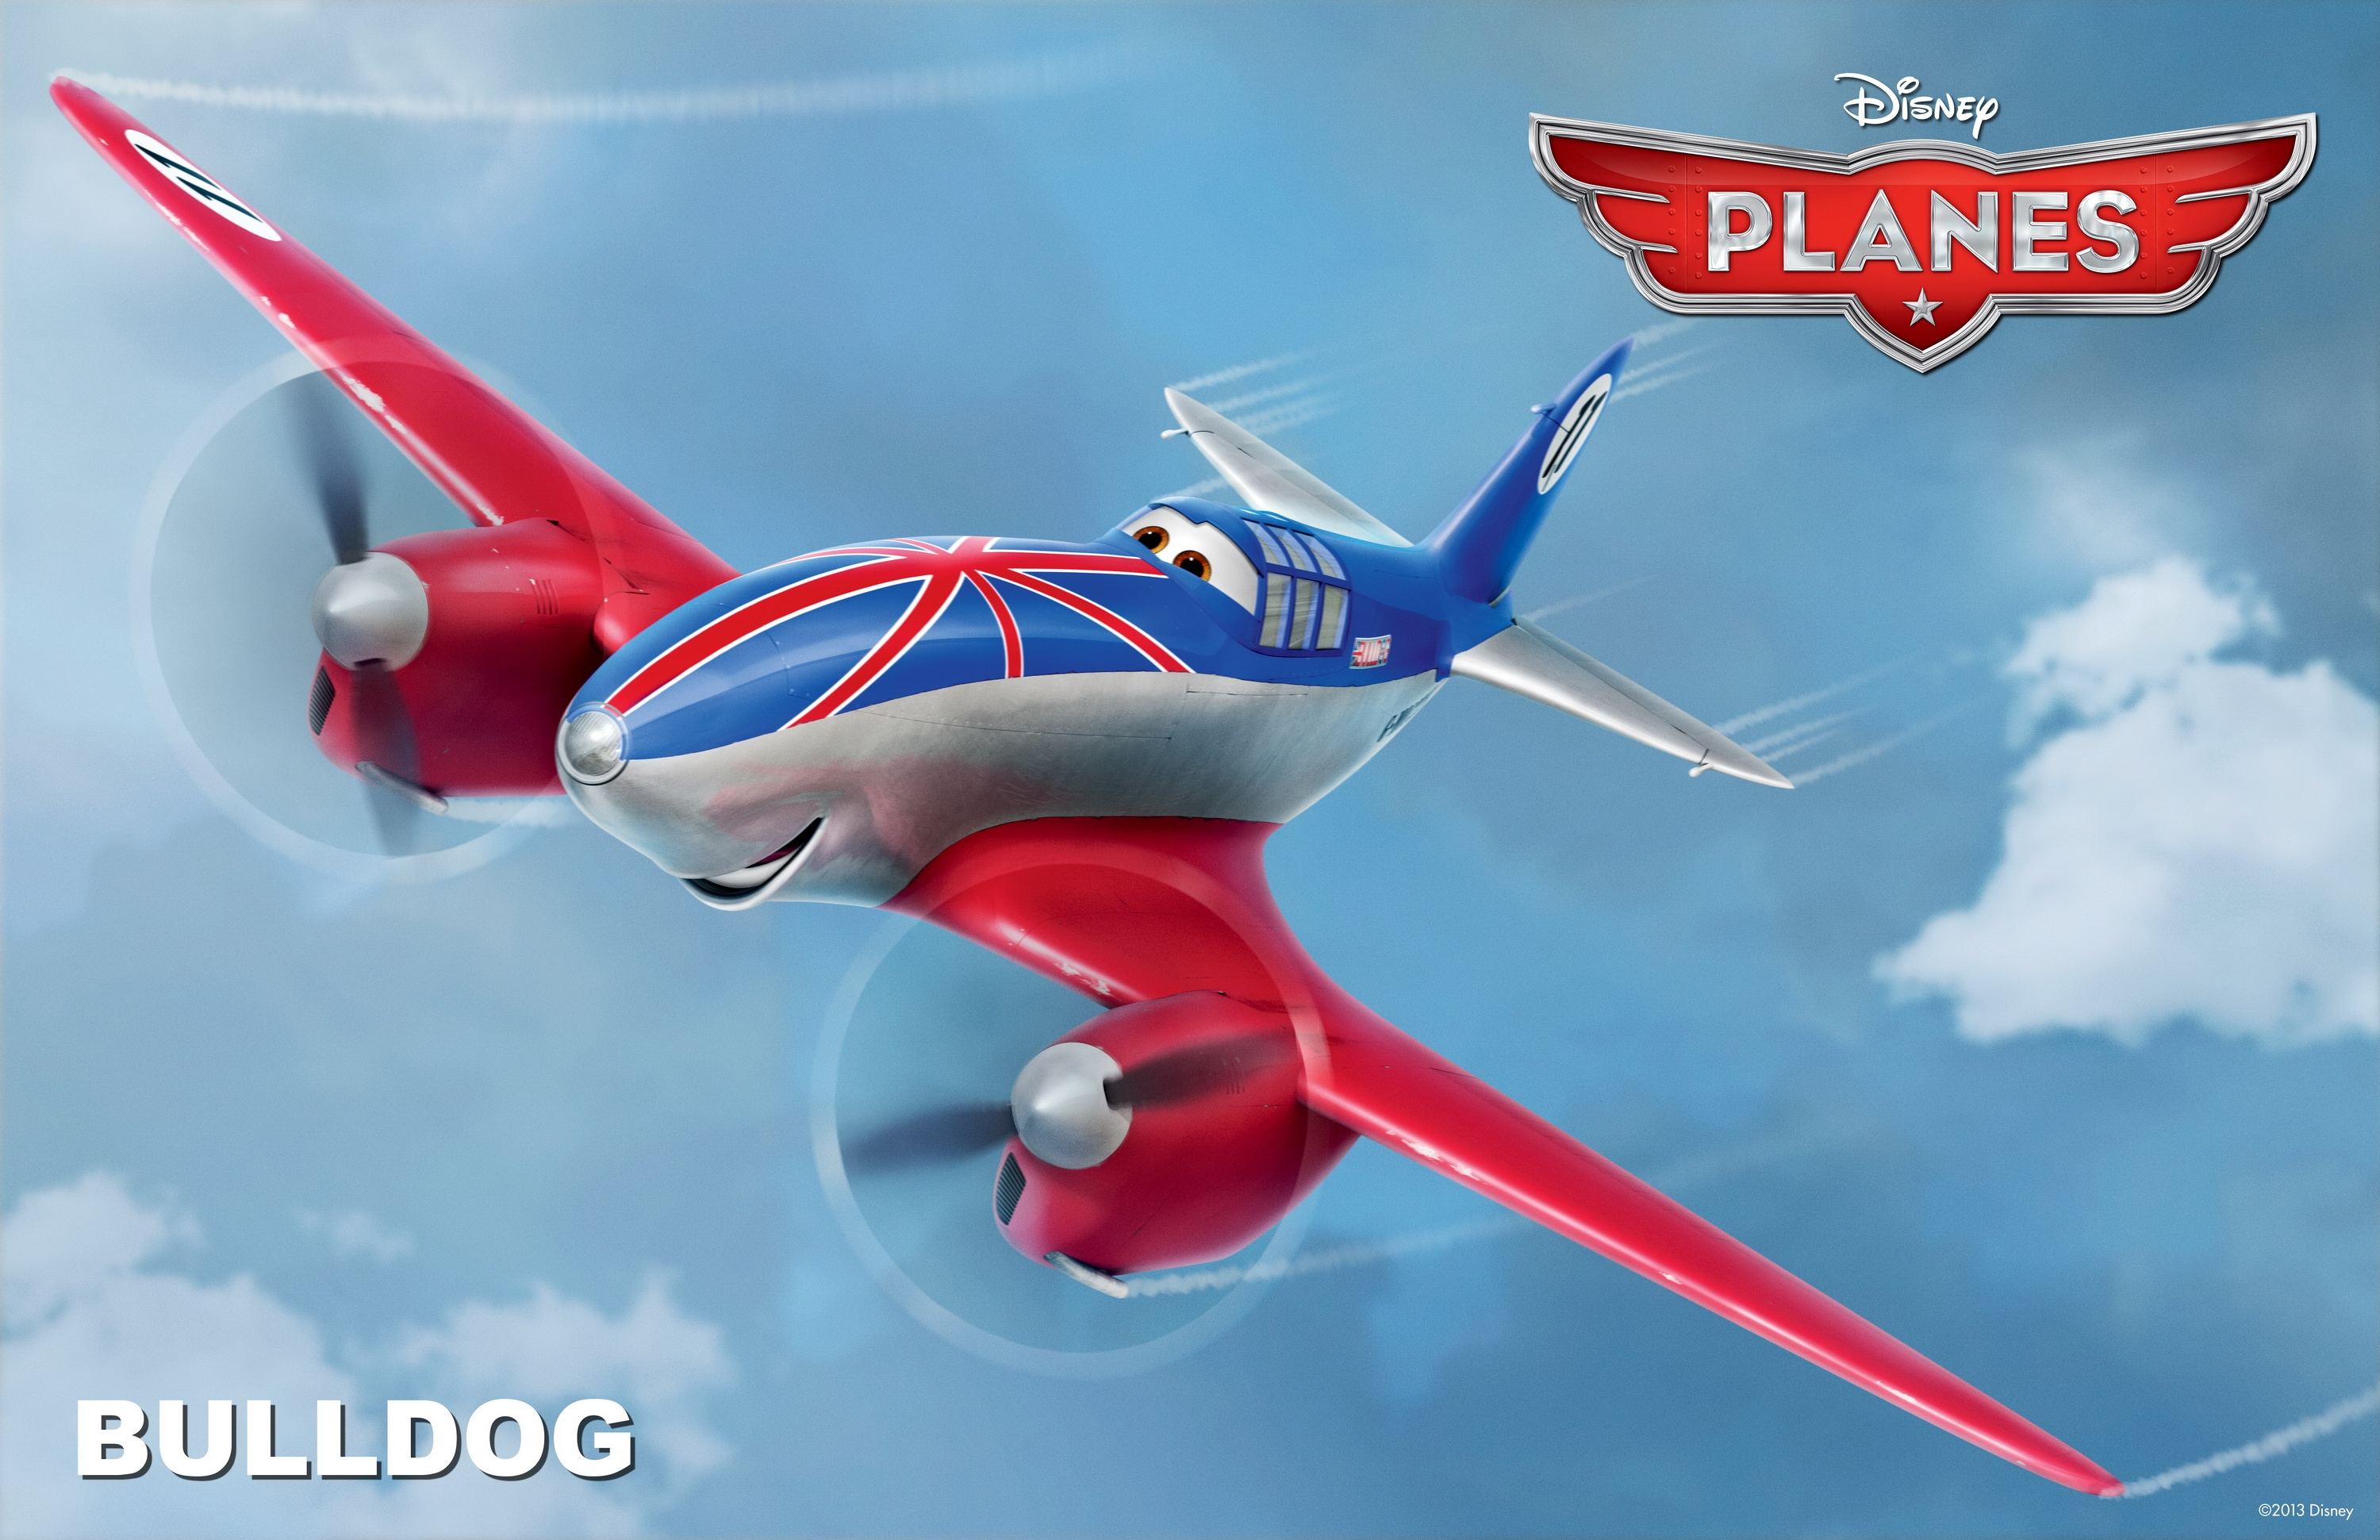 bulldog disney pixar planes free hd wallpaper